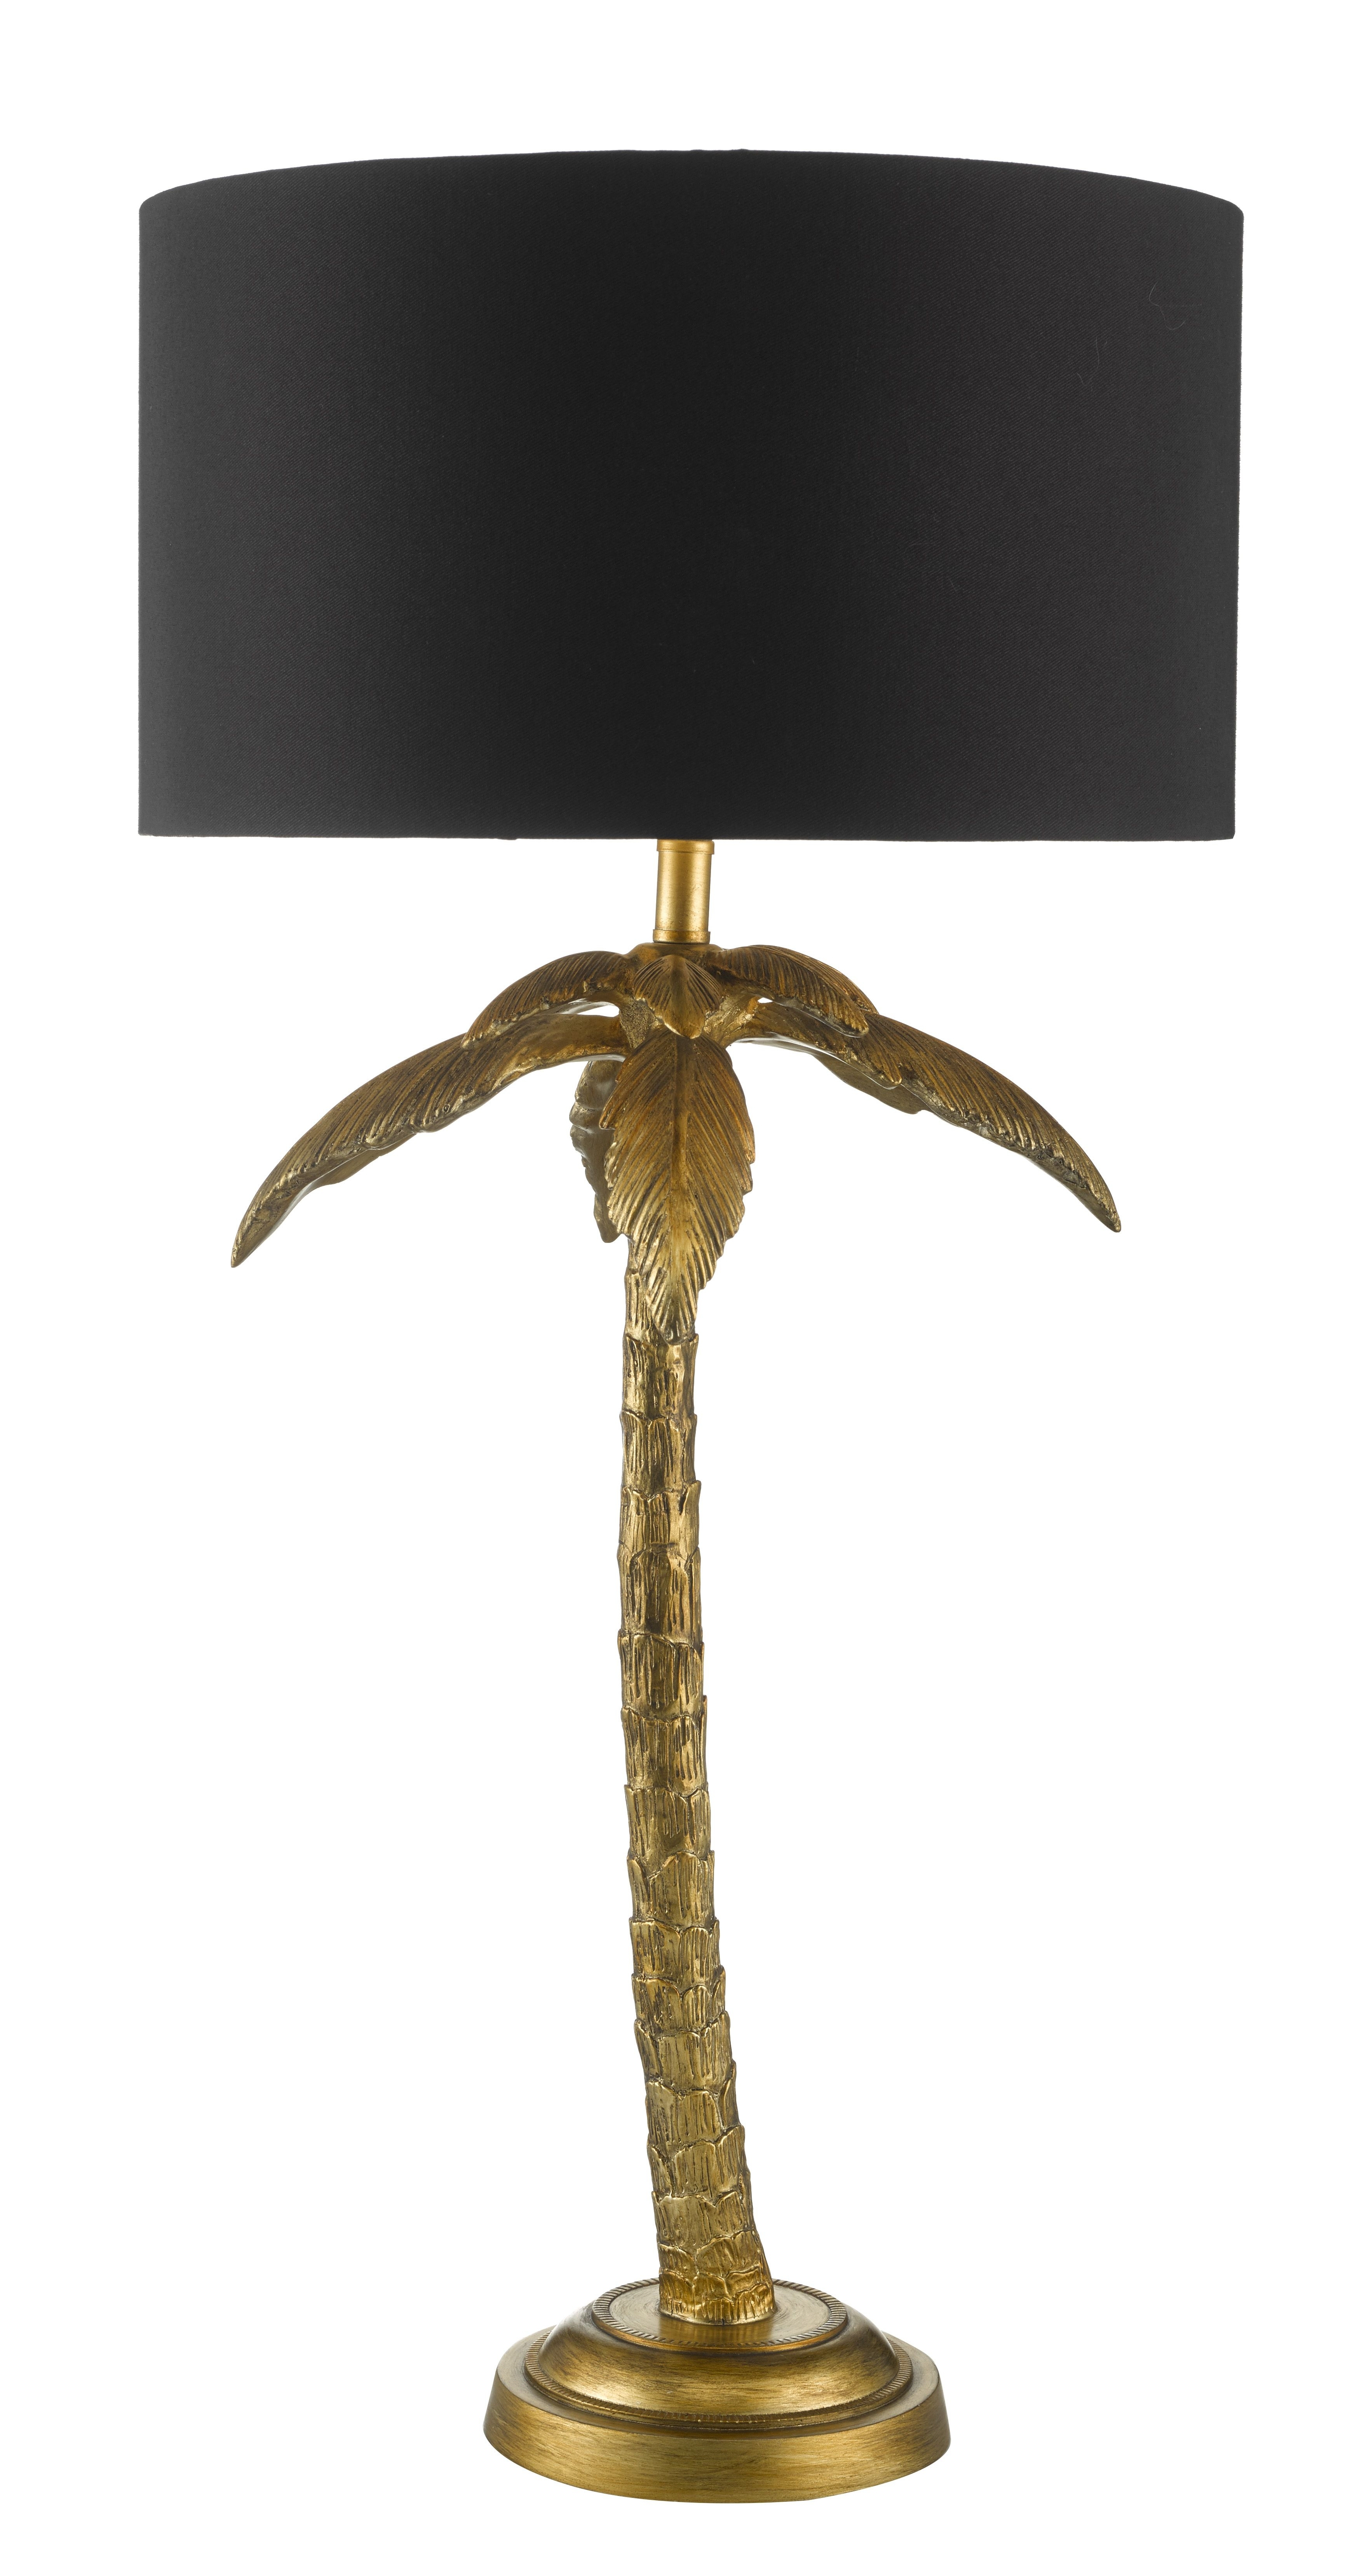 Coco Palm Table Light #lightingideas #industrialinterior With Regard To Debenhams Table Lamps For Living Room (#7 of 15)